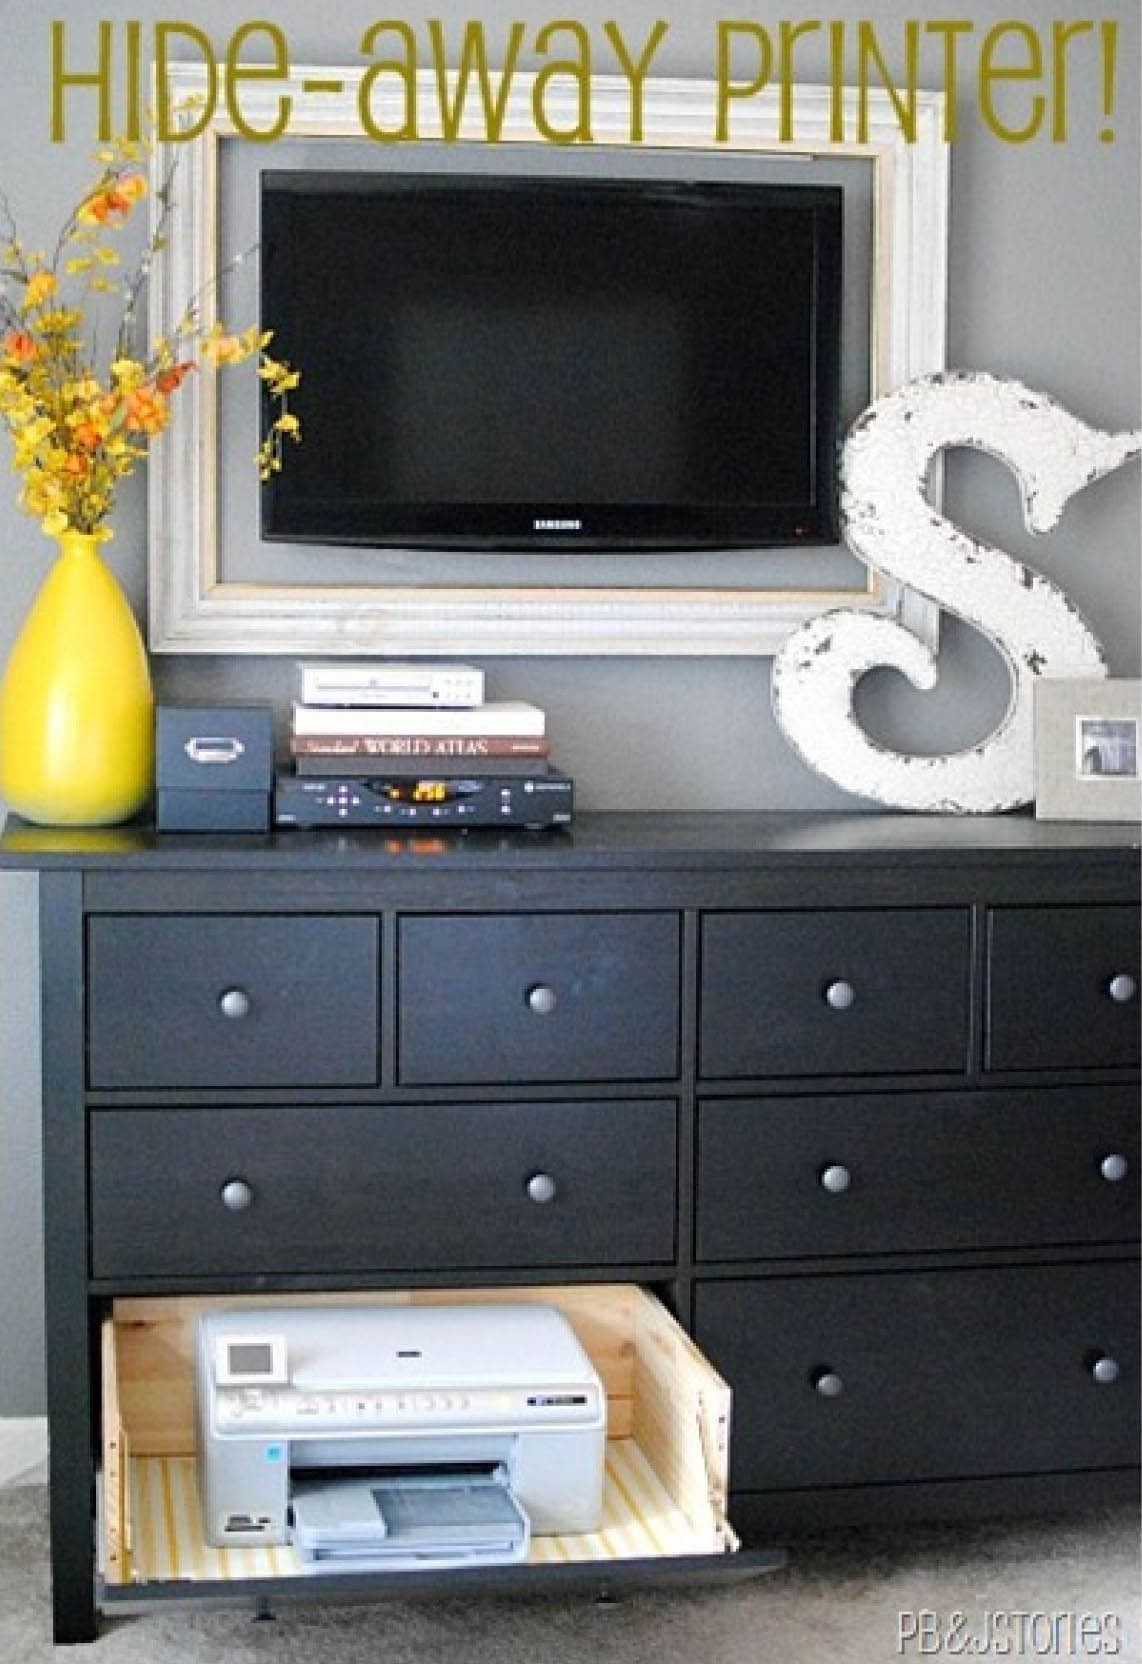 How to hide a printer printer storage solutions for Disguise tv on wall